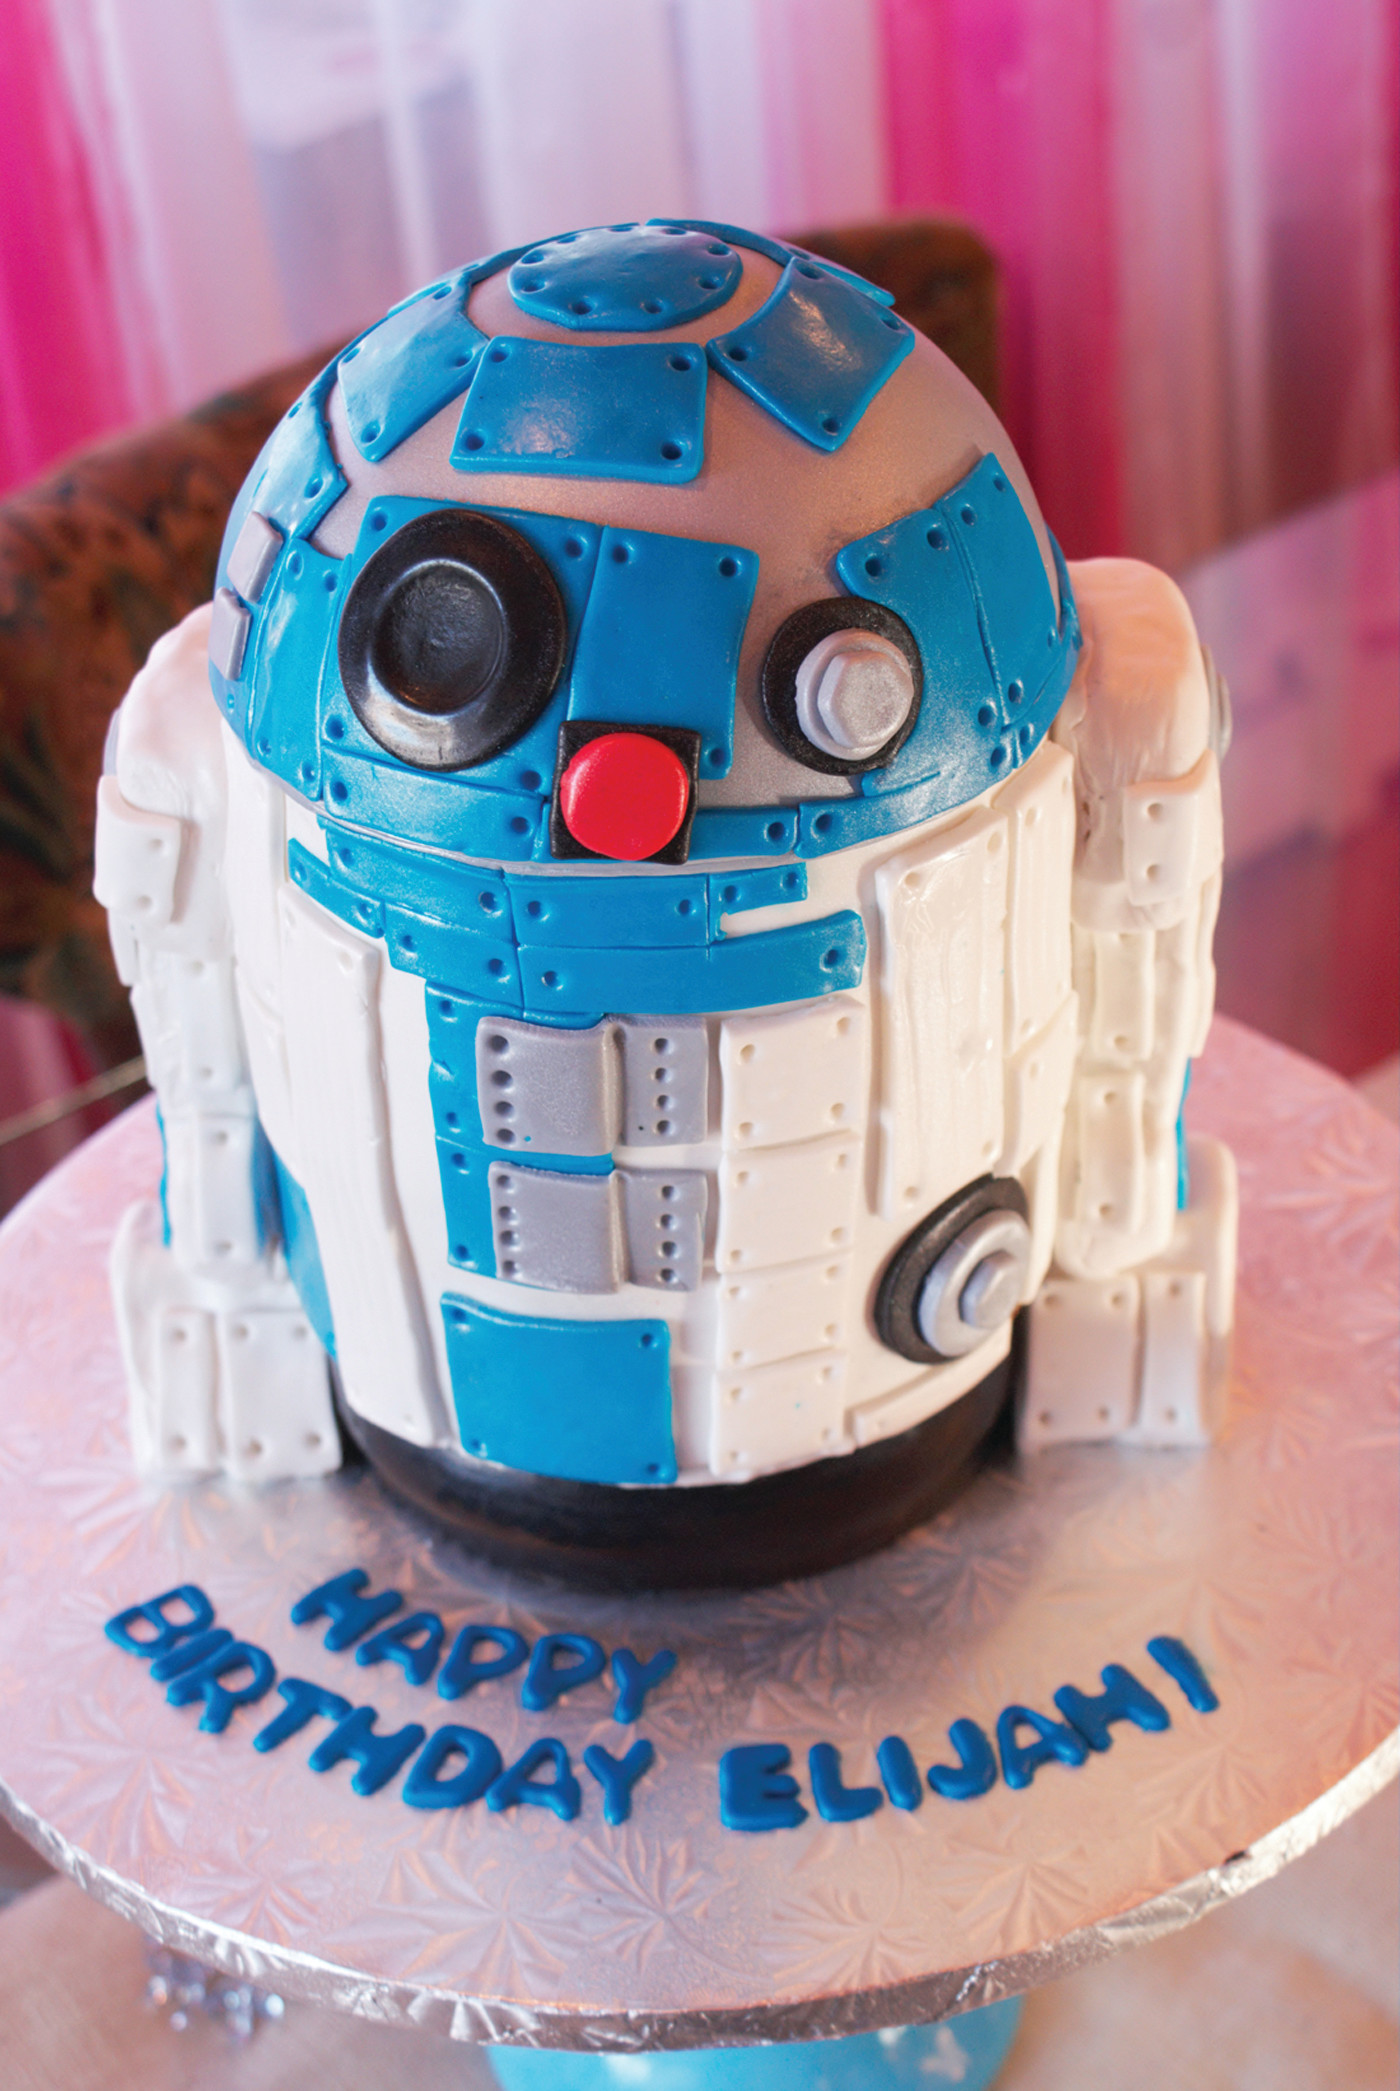 For Local Bakery Star Wars Frenzy In Full Force Cranston Herald